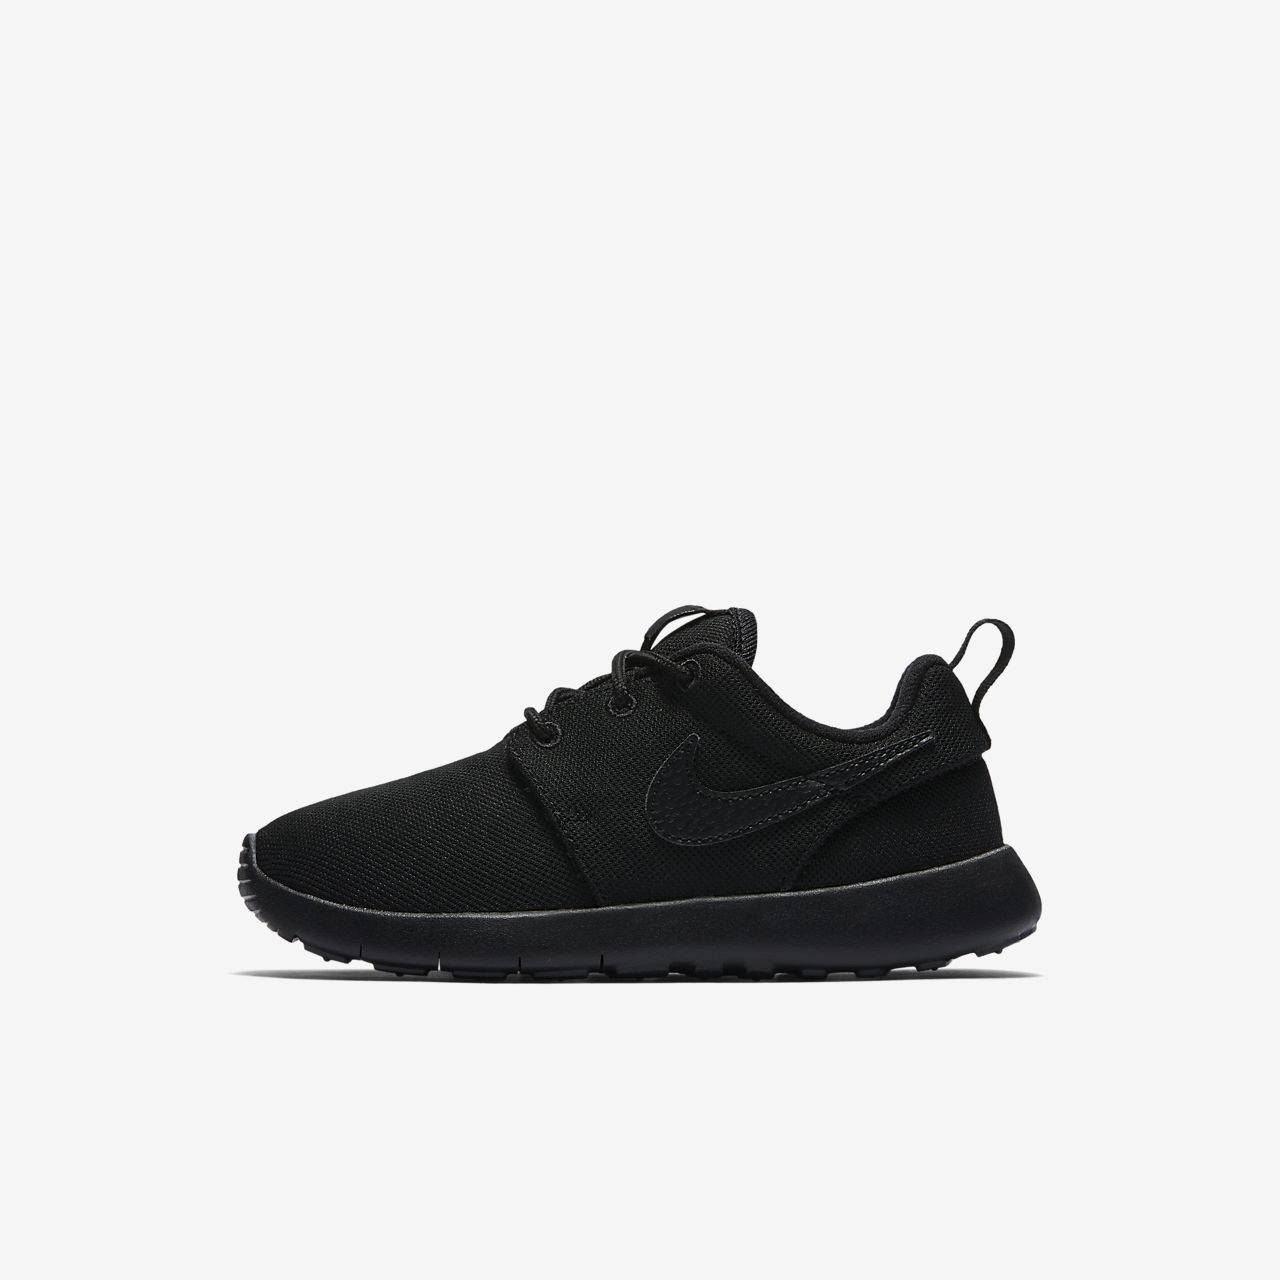 ... Chaussure Nike Roshe One pour Jeune enfant